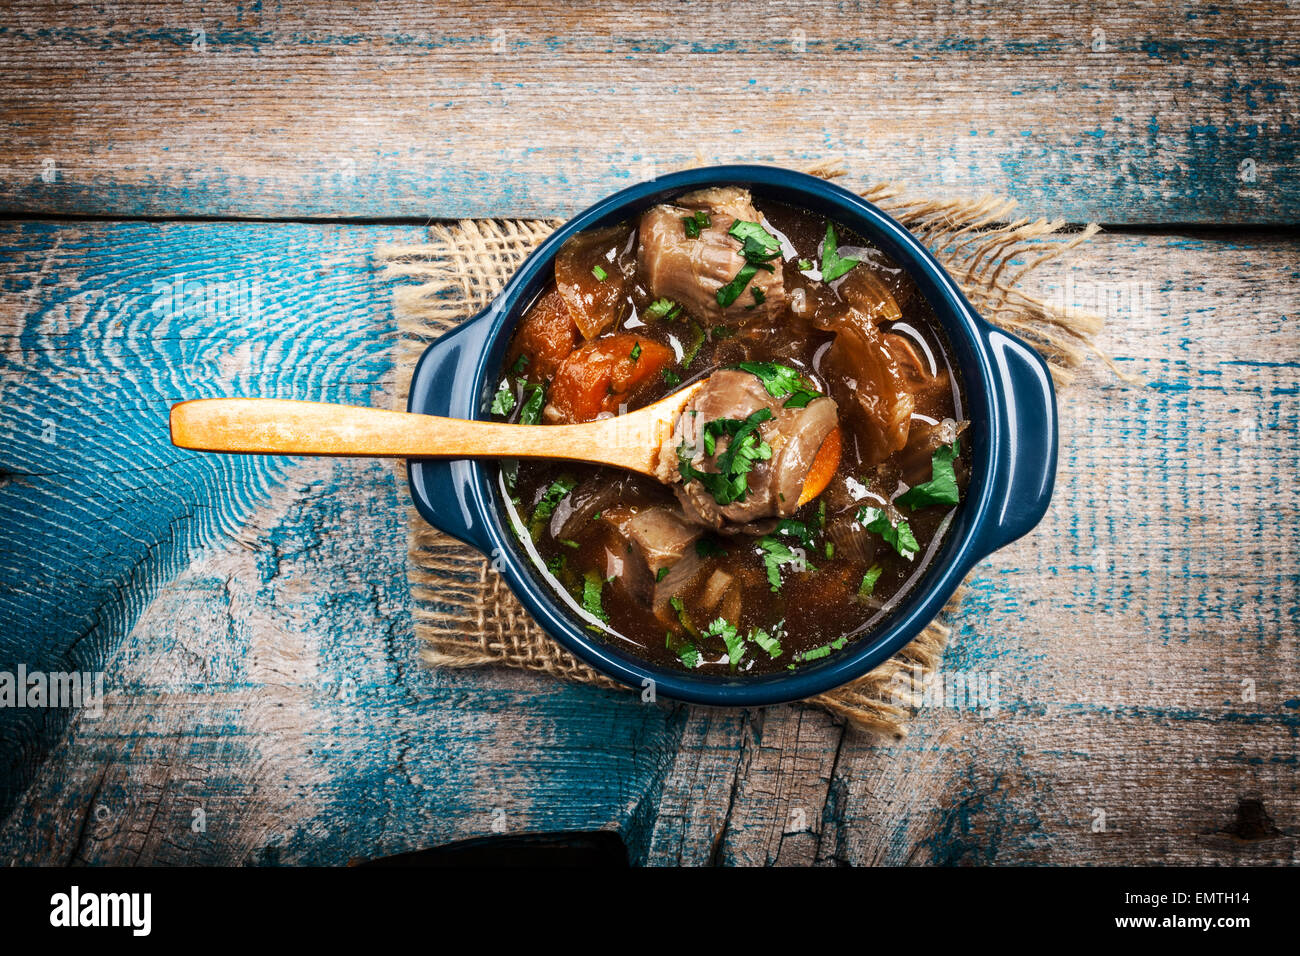 Meat stew with vegetables and herbs on old wooden table - Stock Image